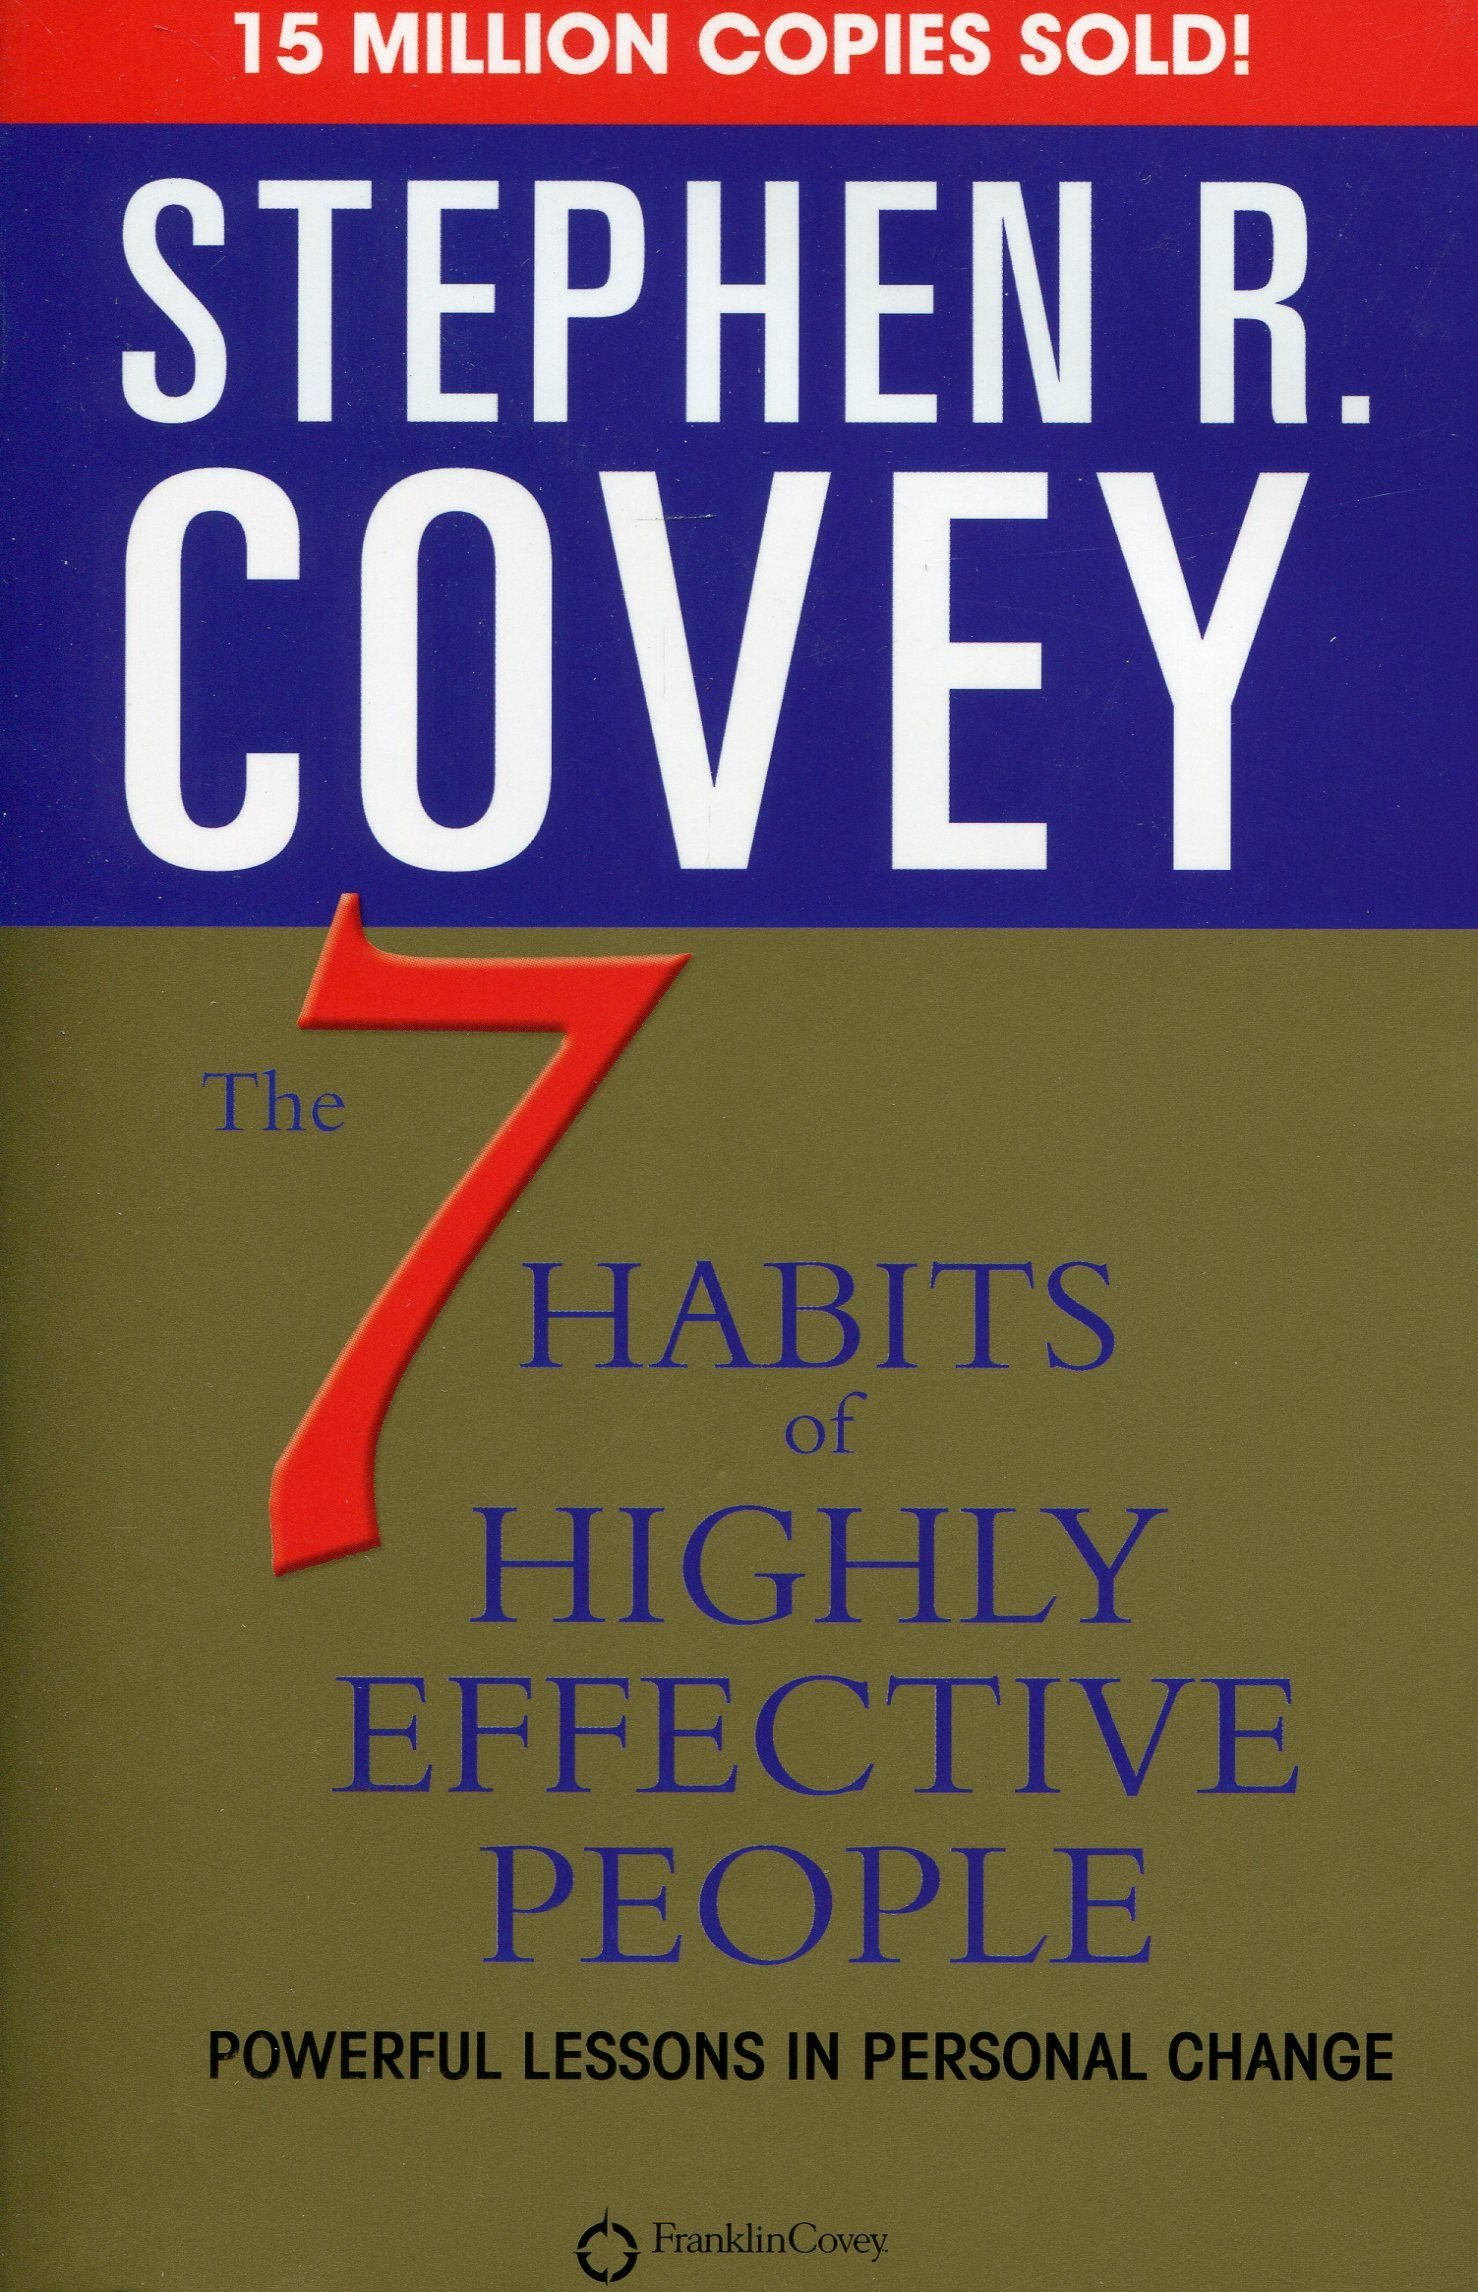 The 7 habits of highly effective people stephen covey audio book.